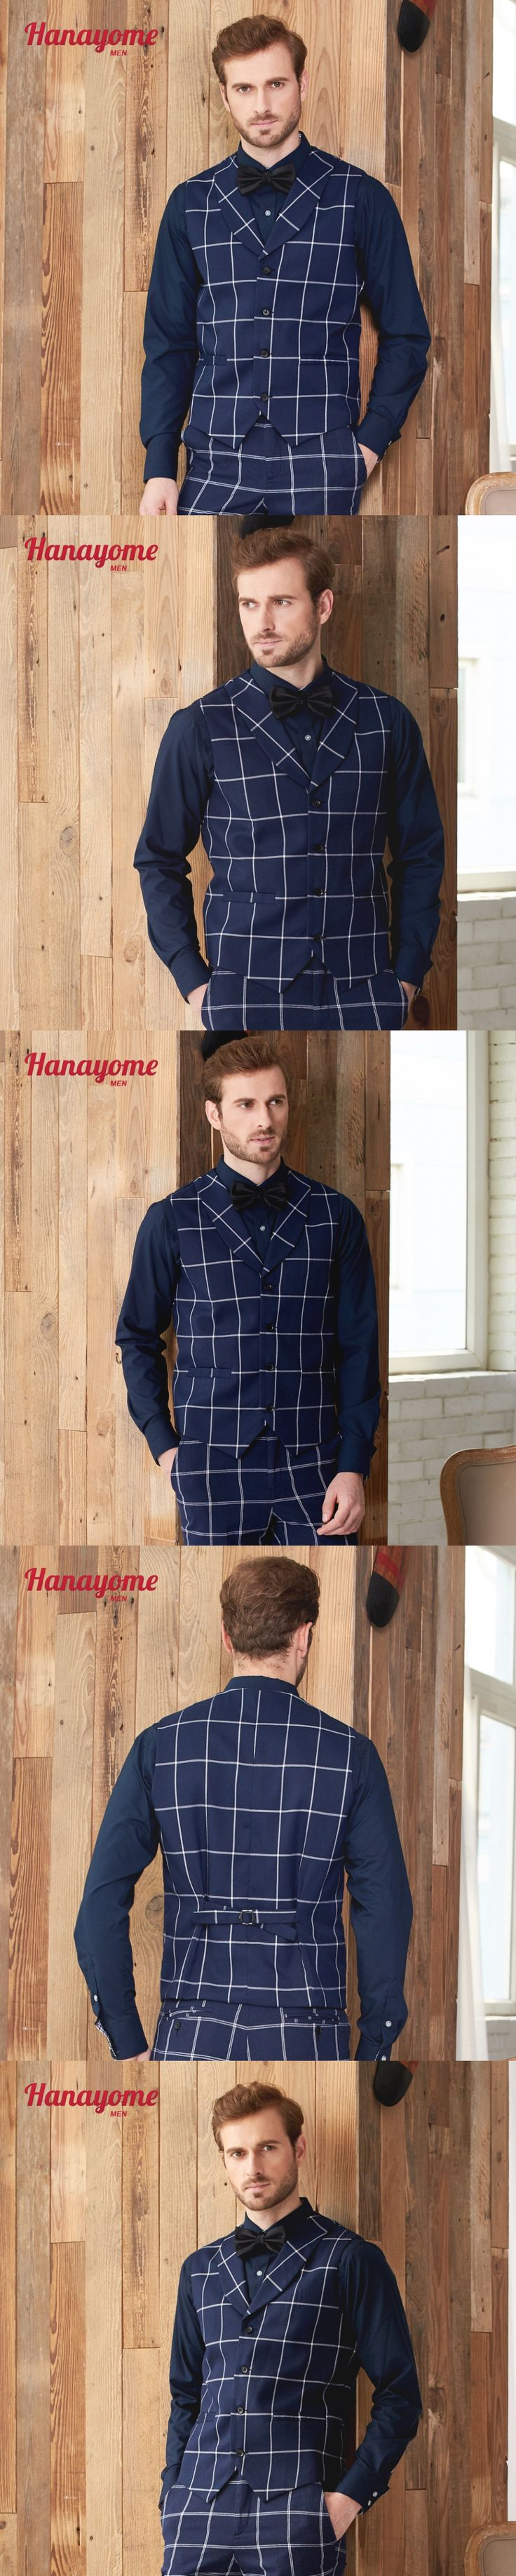 New Arrival Men's Suit Vest Navy Checked Single-Breasted Slim Fit Waist Jacket Adjusted Business Casual Groom Suits vest for Men